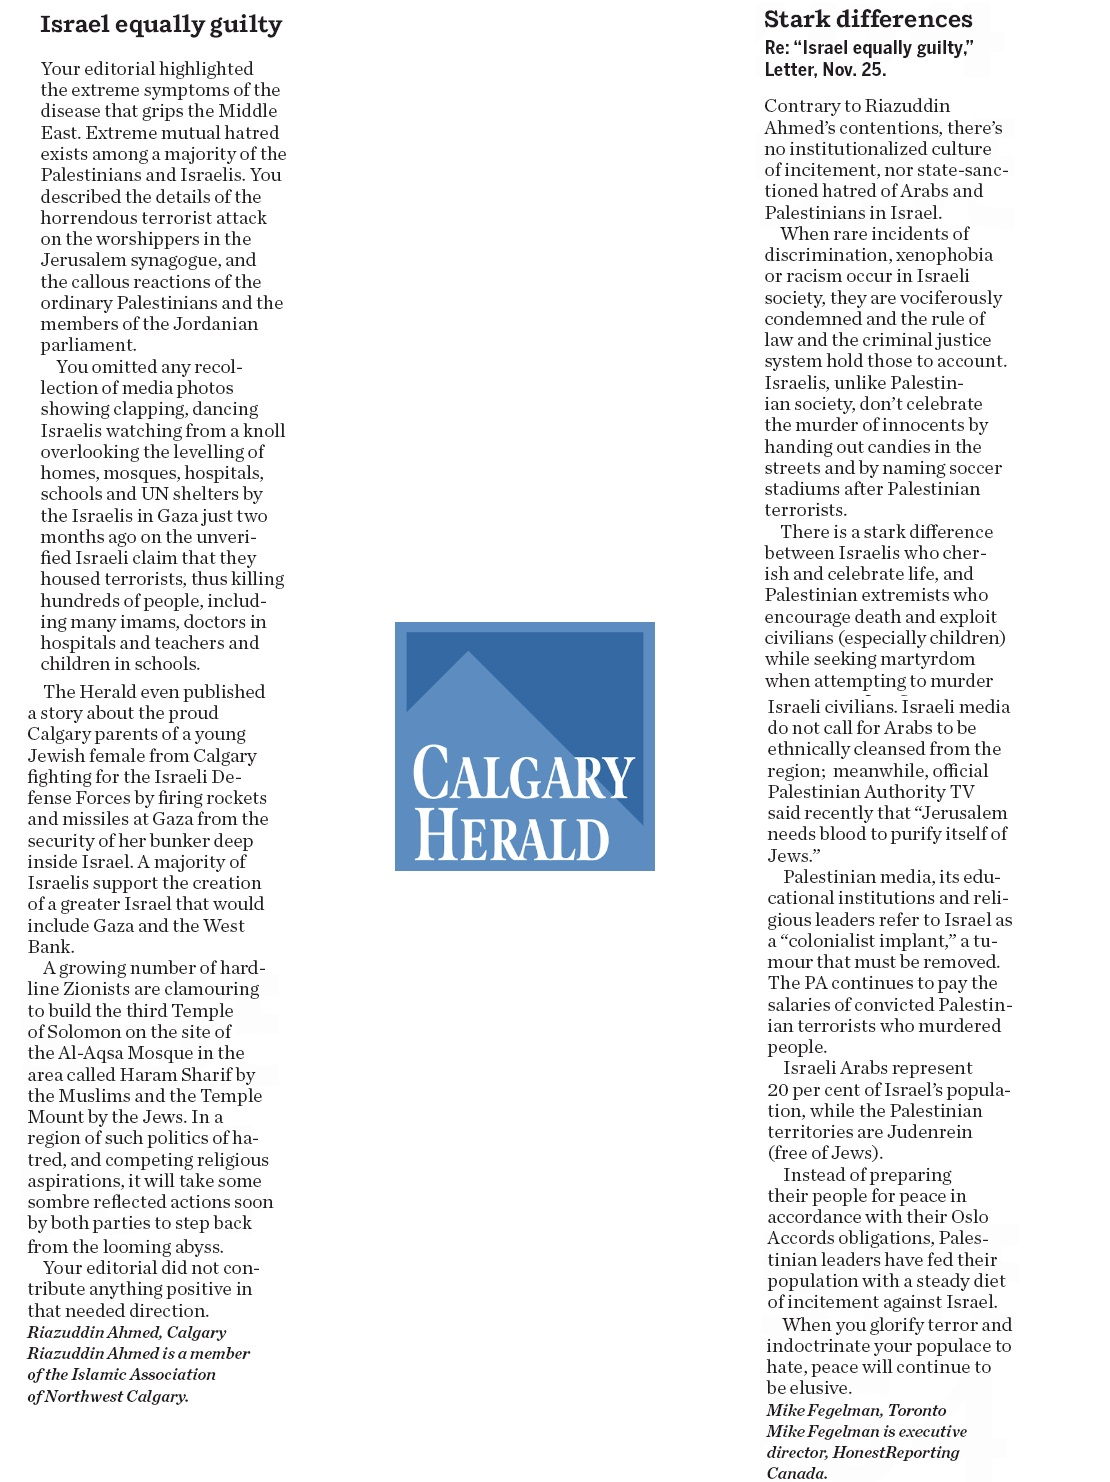 In Calgary Herald, HRC Exposes Palestinian Incitement Against Israel